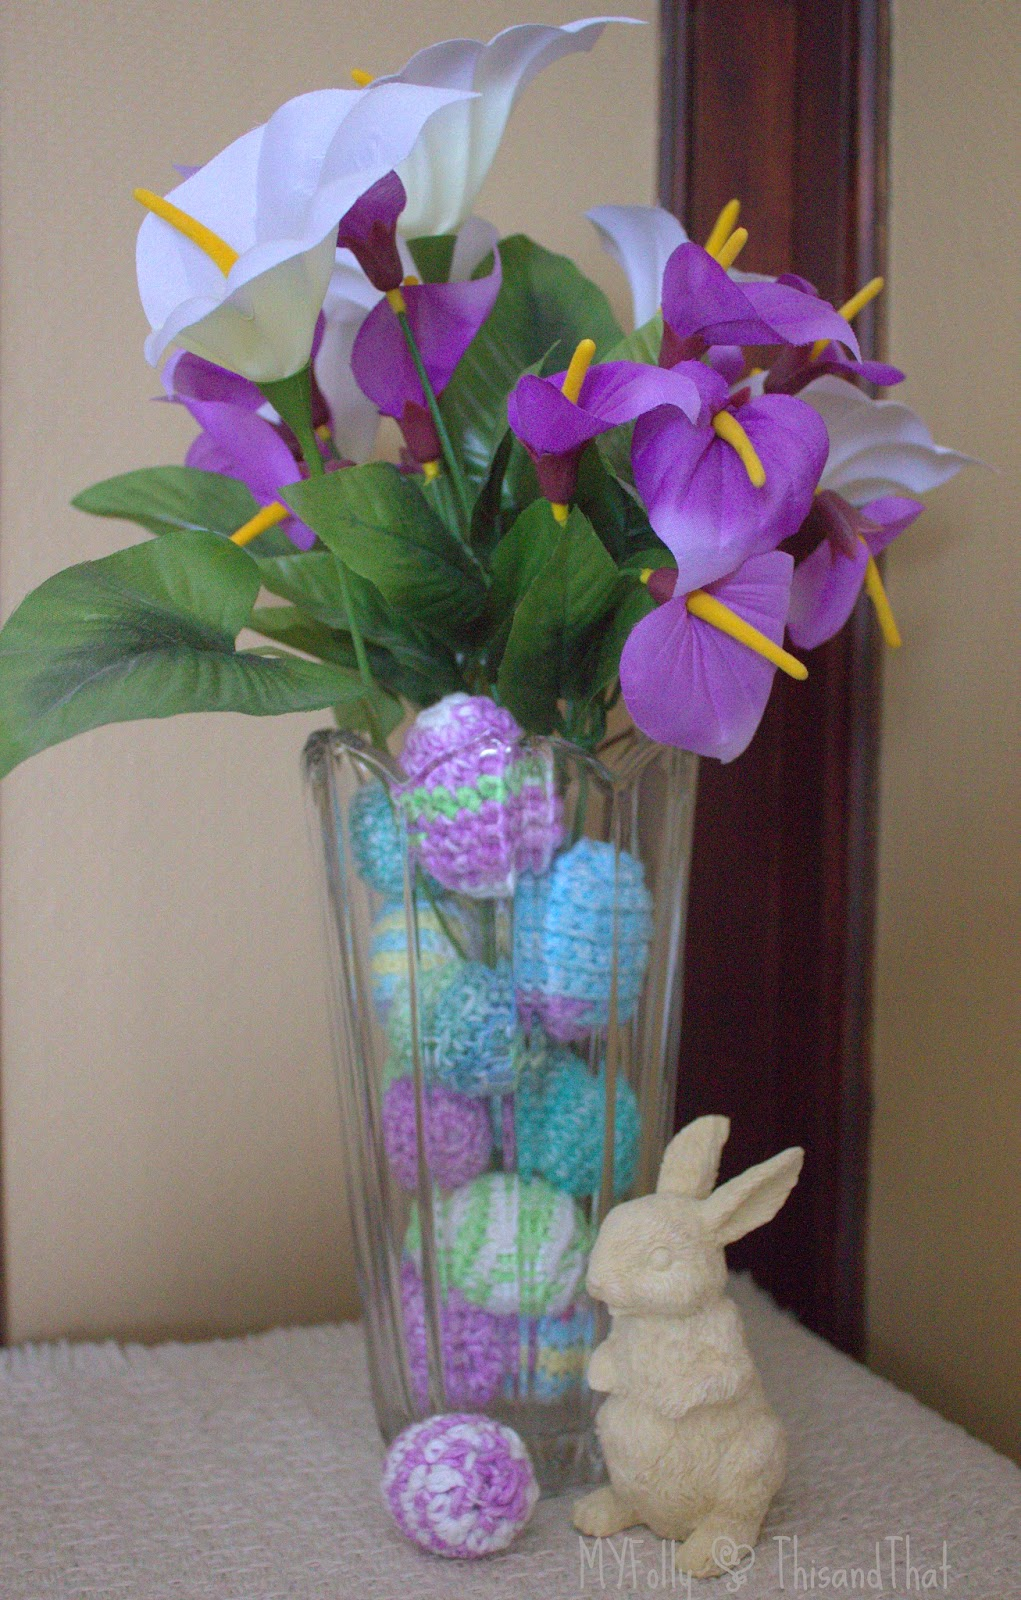 Decorating with crochet Easter Eggs #crafts #easter #crochet